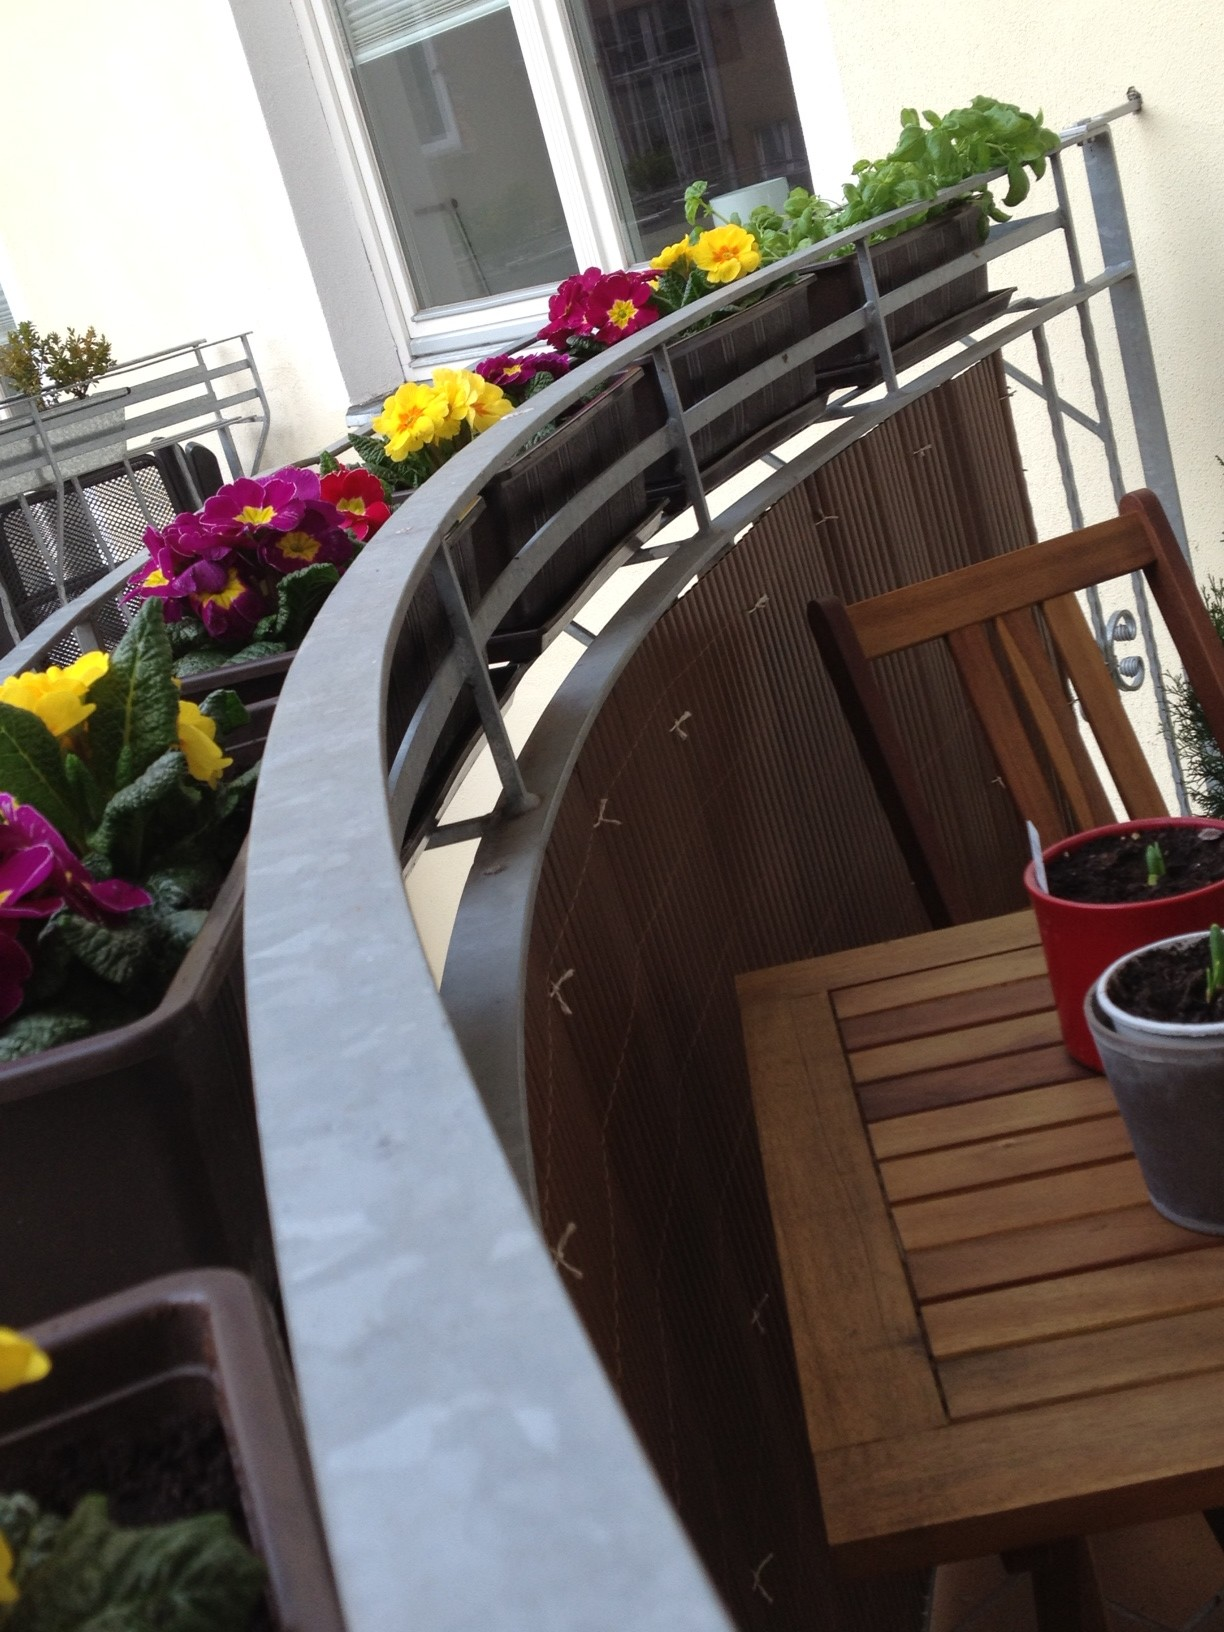 Flowers and Basil for the Balcony - Savannah Page